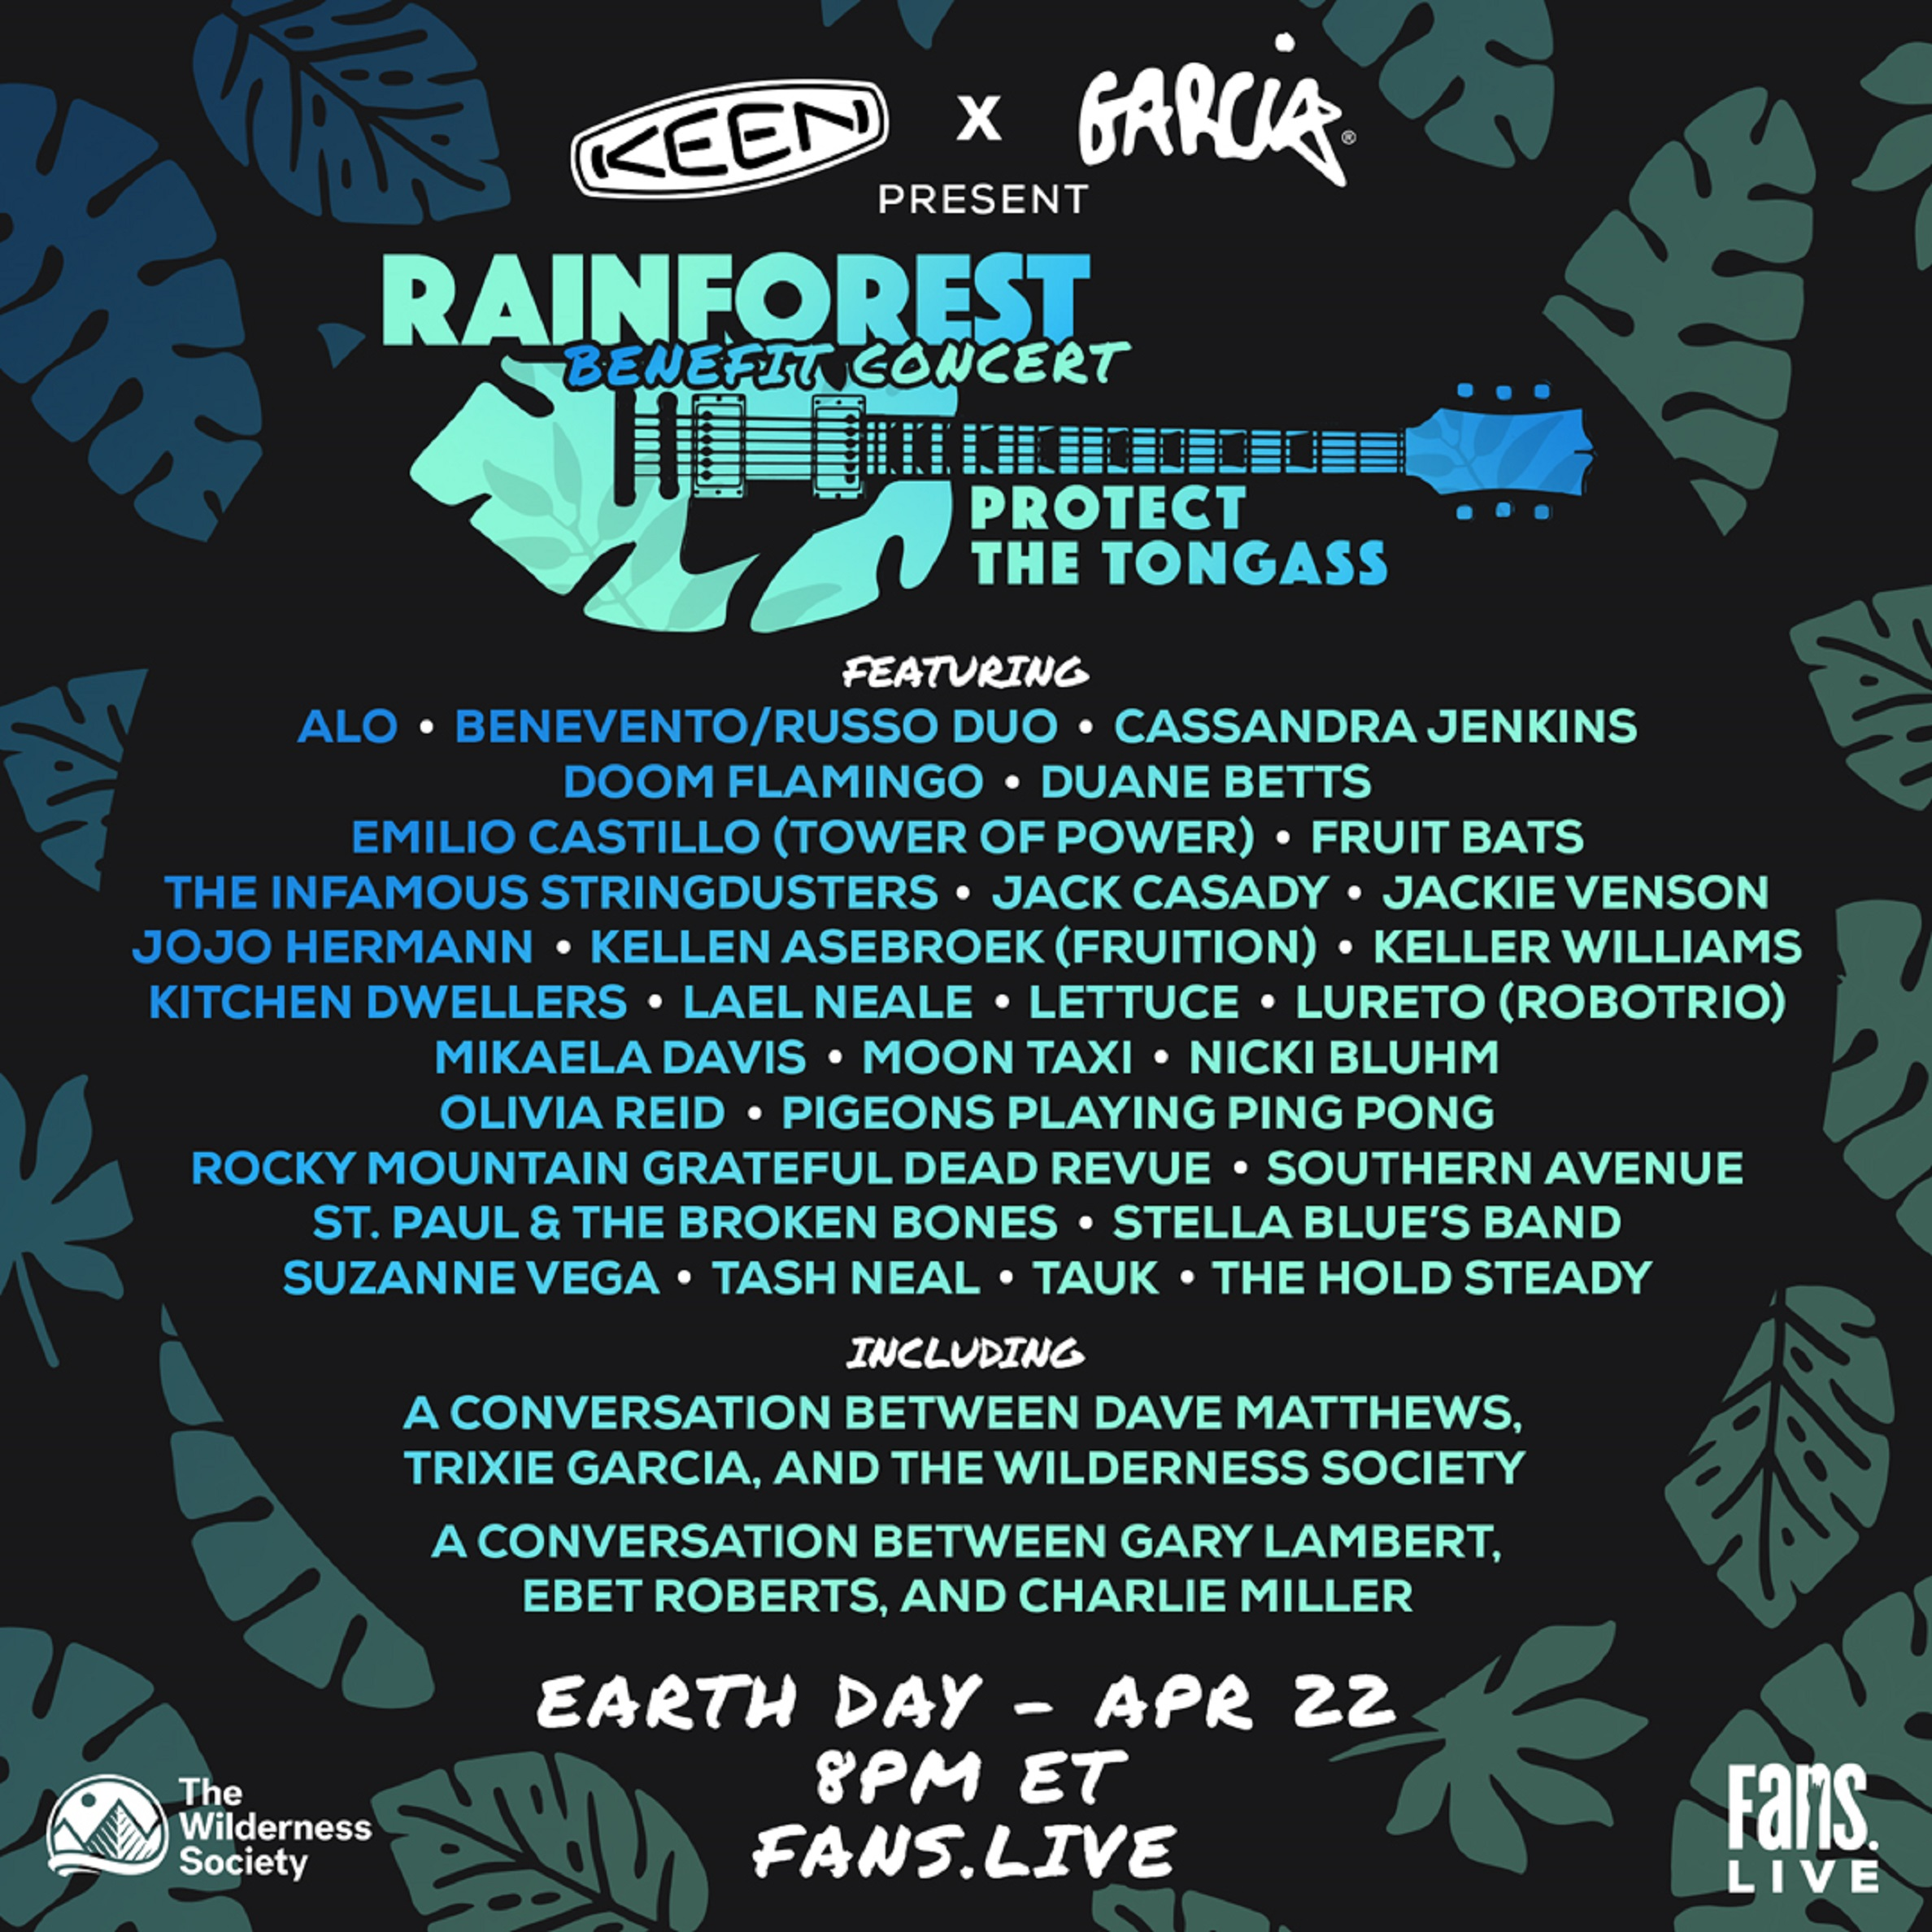 FANS and KEEN x Garcia Announce Full List of Artists and Conversations for Rainforest Benefit Concert: Protect the Tongass